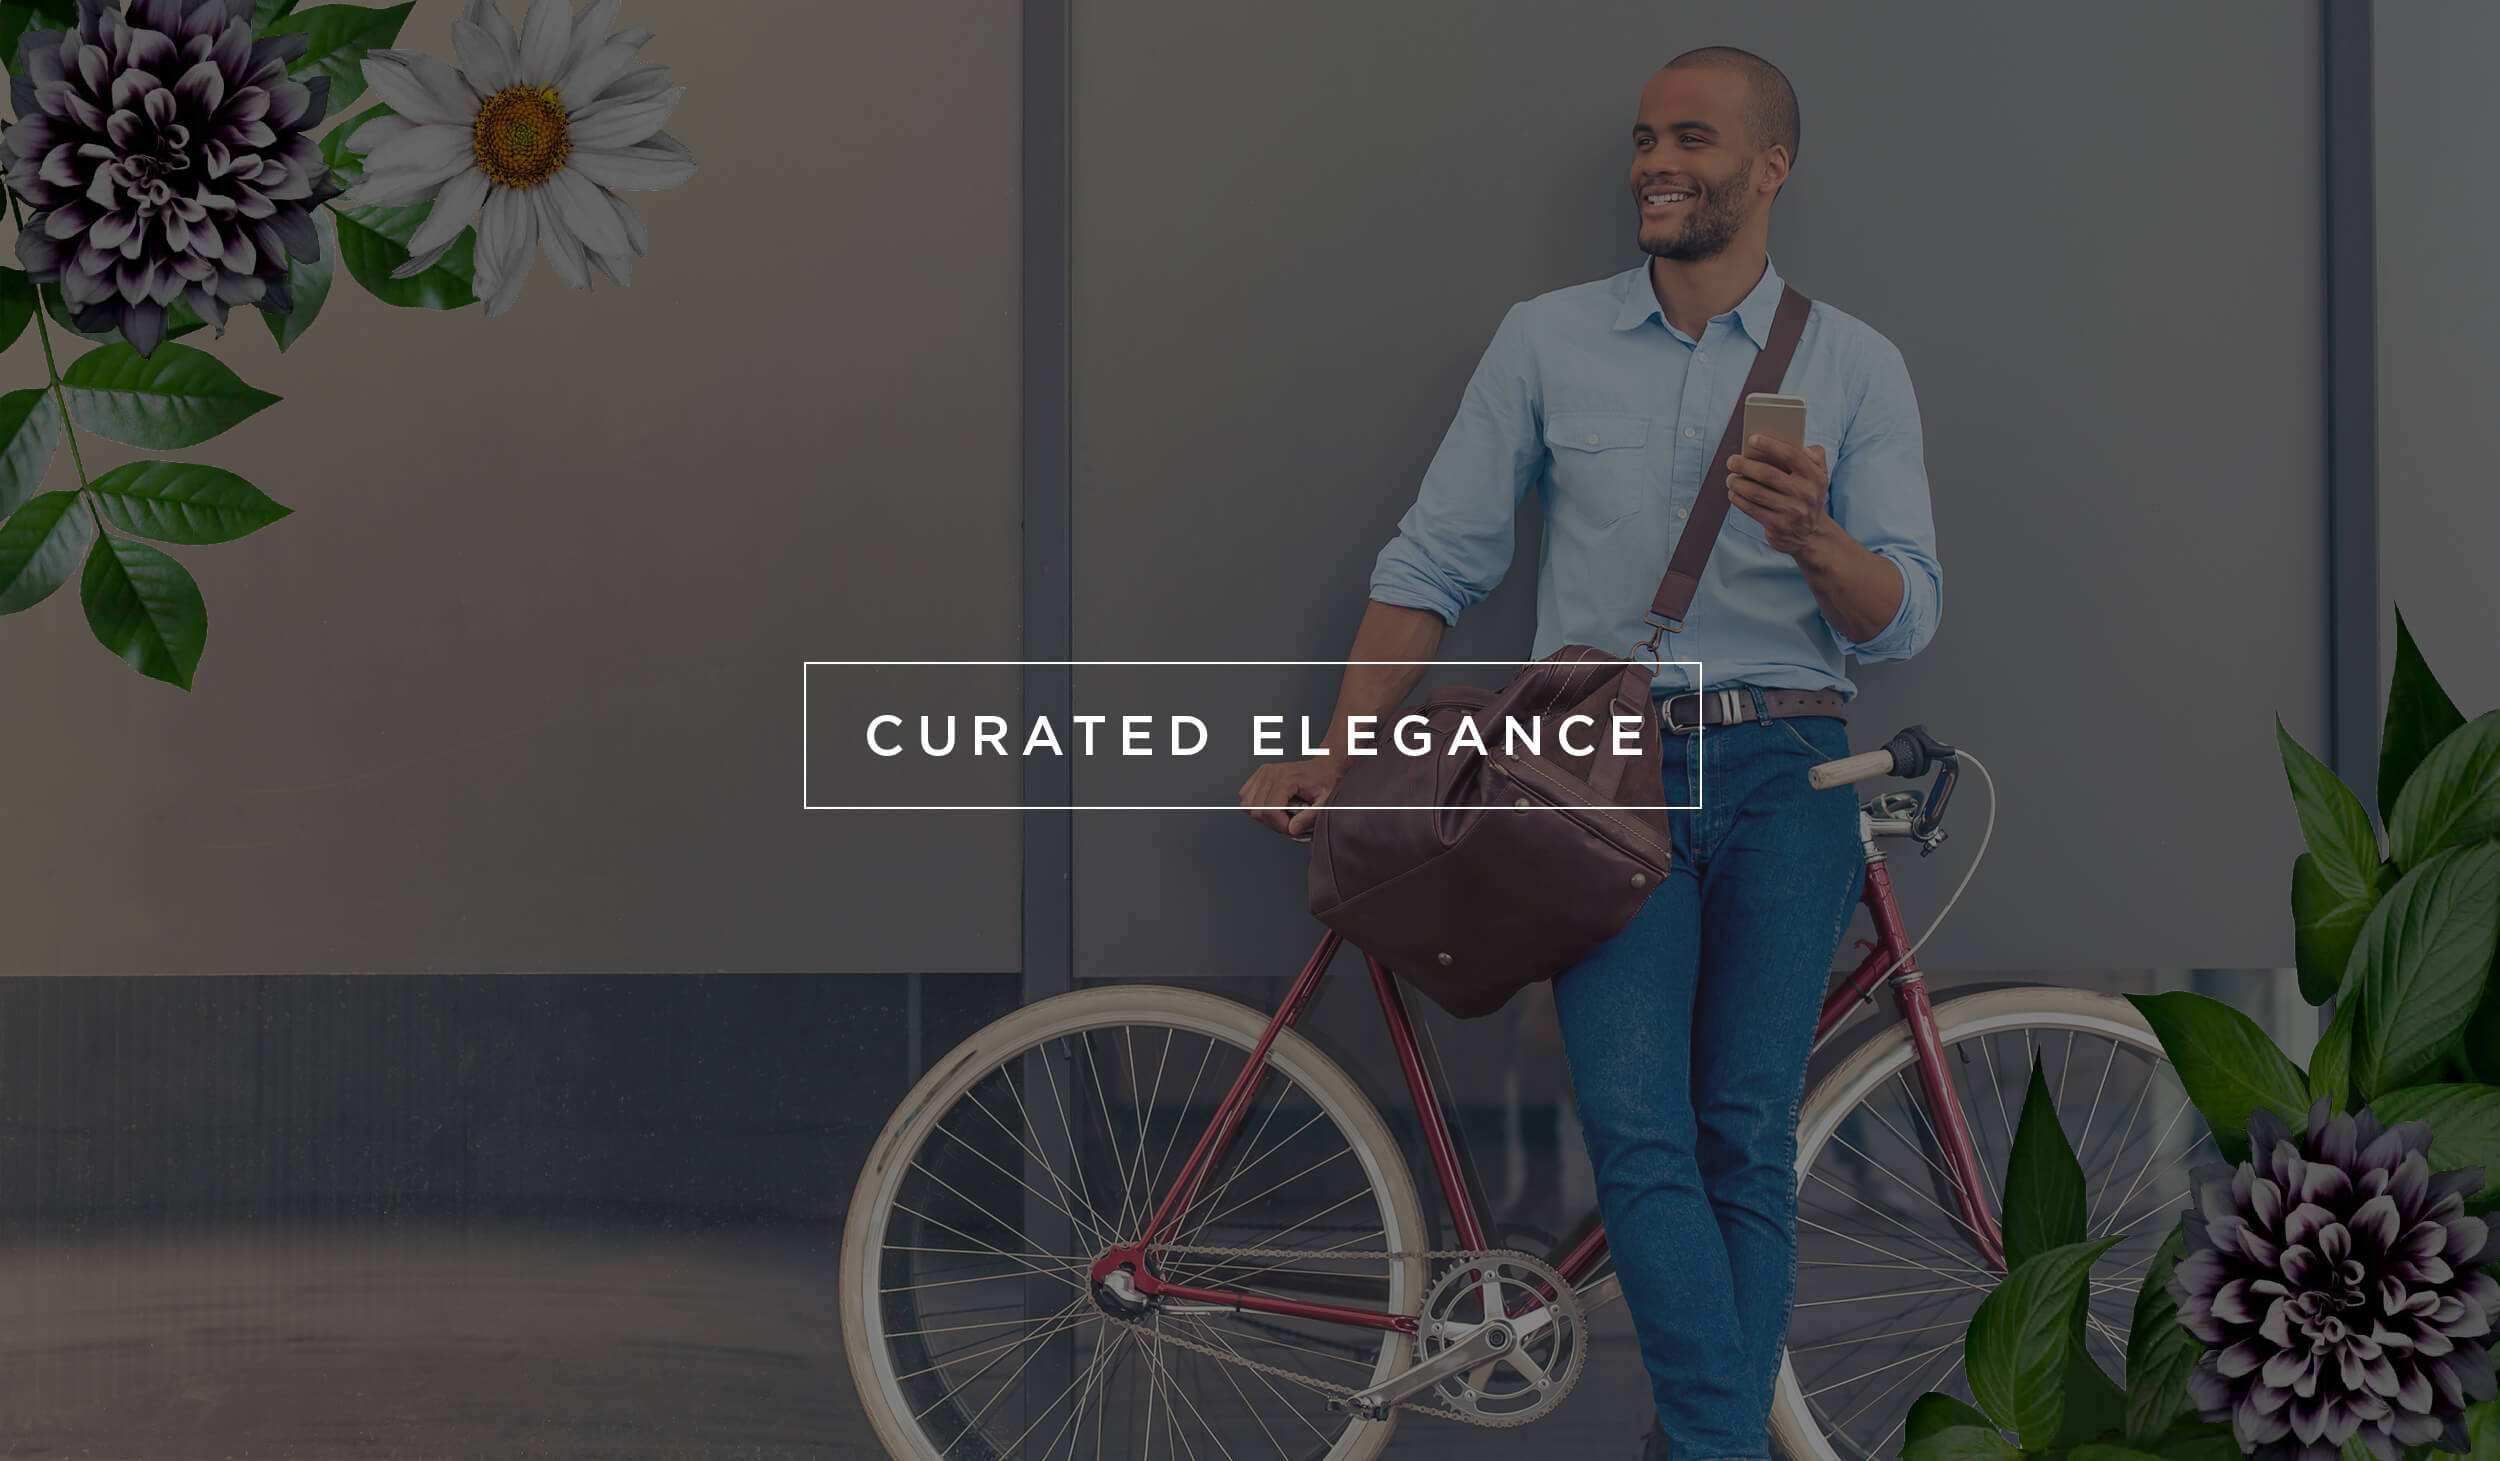 photo of man in business casual clothing, with a bag on his shoulder, holding a cell phone and leaning against a bicycle, the photo have a gray tint overlay with white text that reads, CURATED ELEGANCE in a rectangle outlined in white